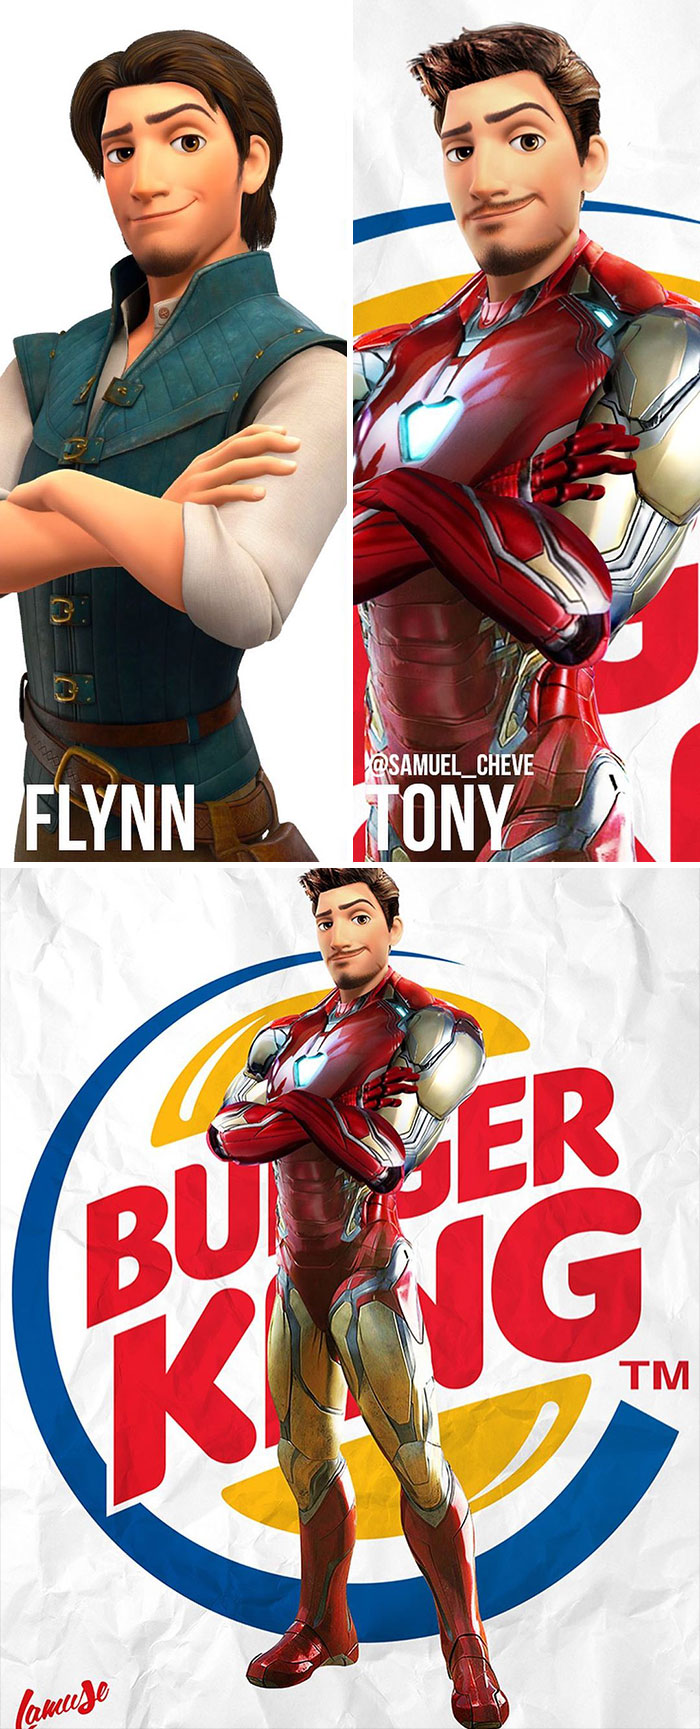 Flynn And Tony Stark 'Iron Man'